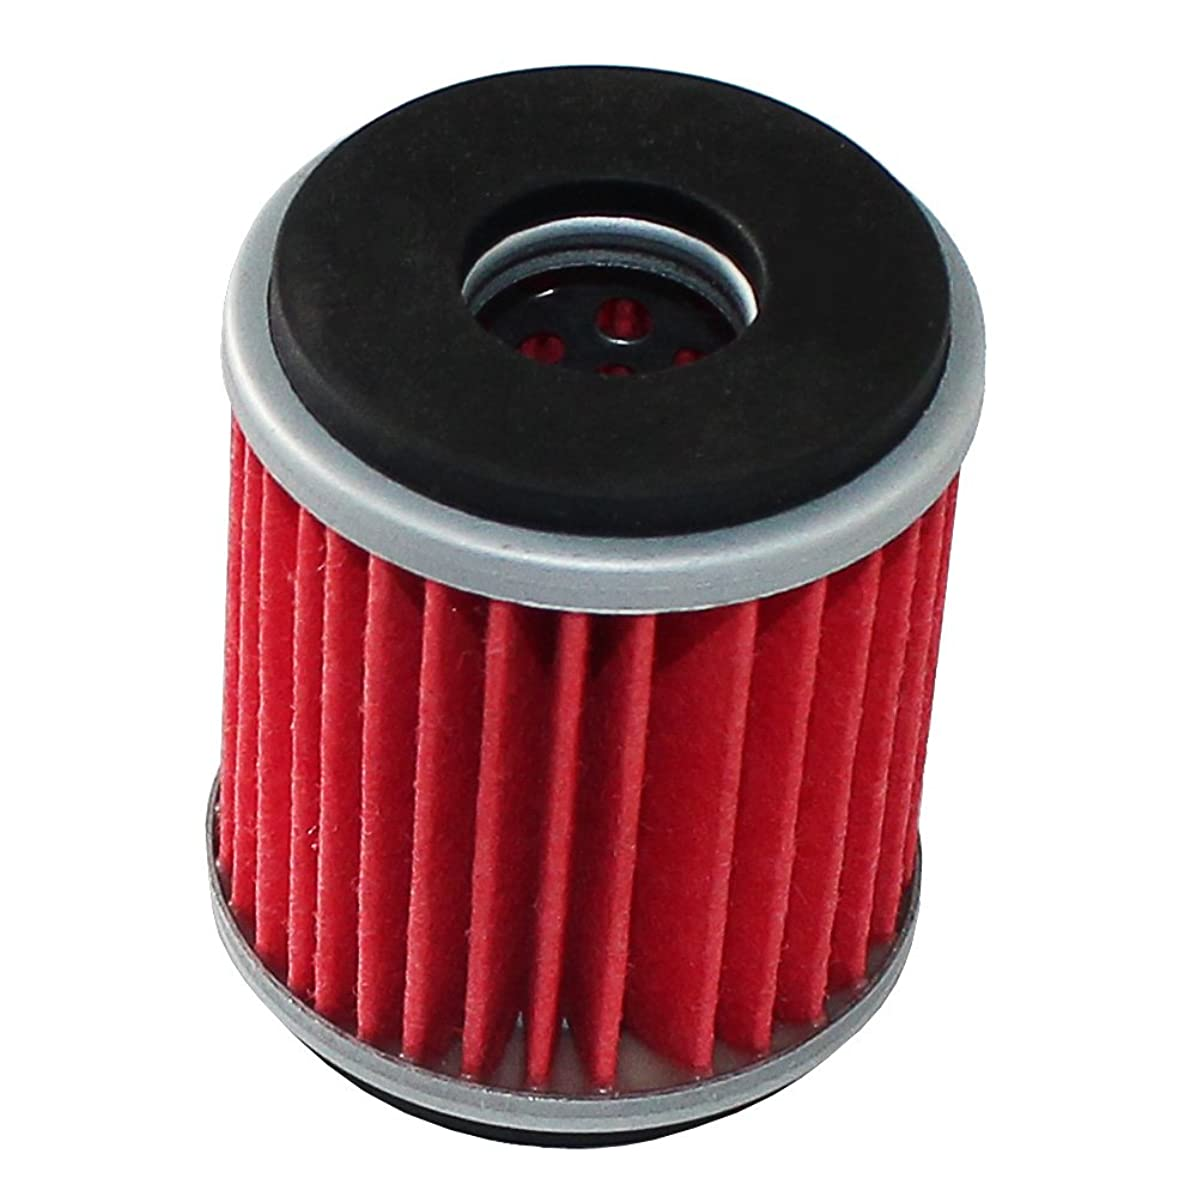 Caltric Oil Filter Fits YAMAHA YZ 450 F 50TH ANNIVERSARY YFZ450 YFZ-450 SPECIAL EDITION 2003-2011 2013-2014